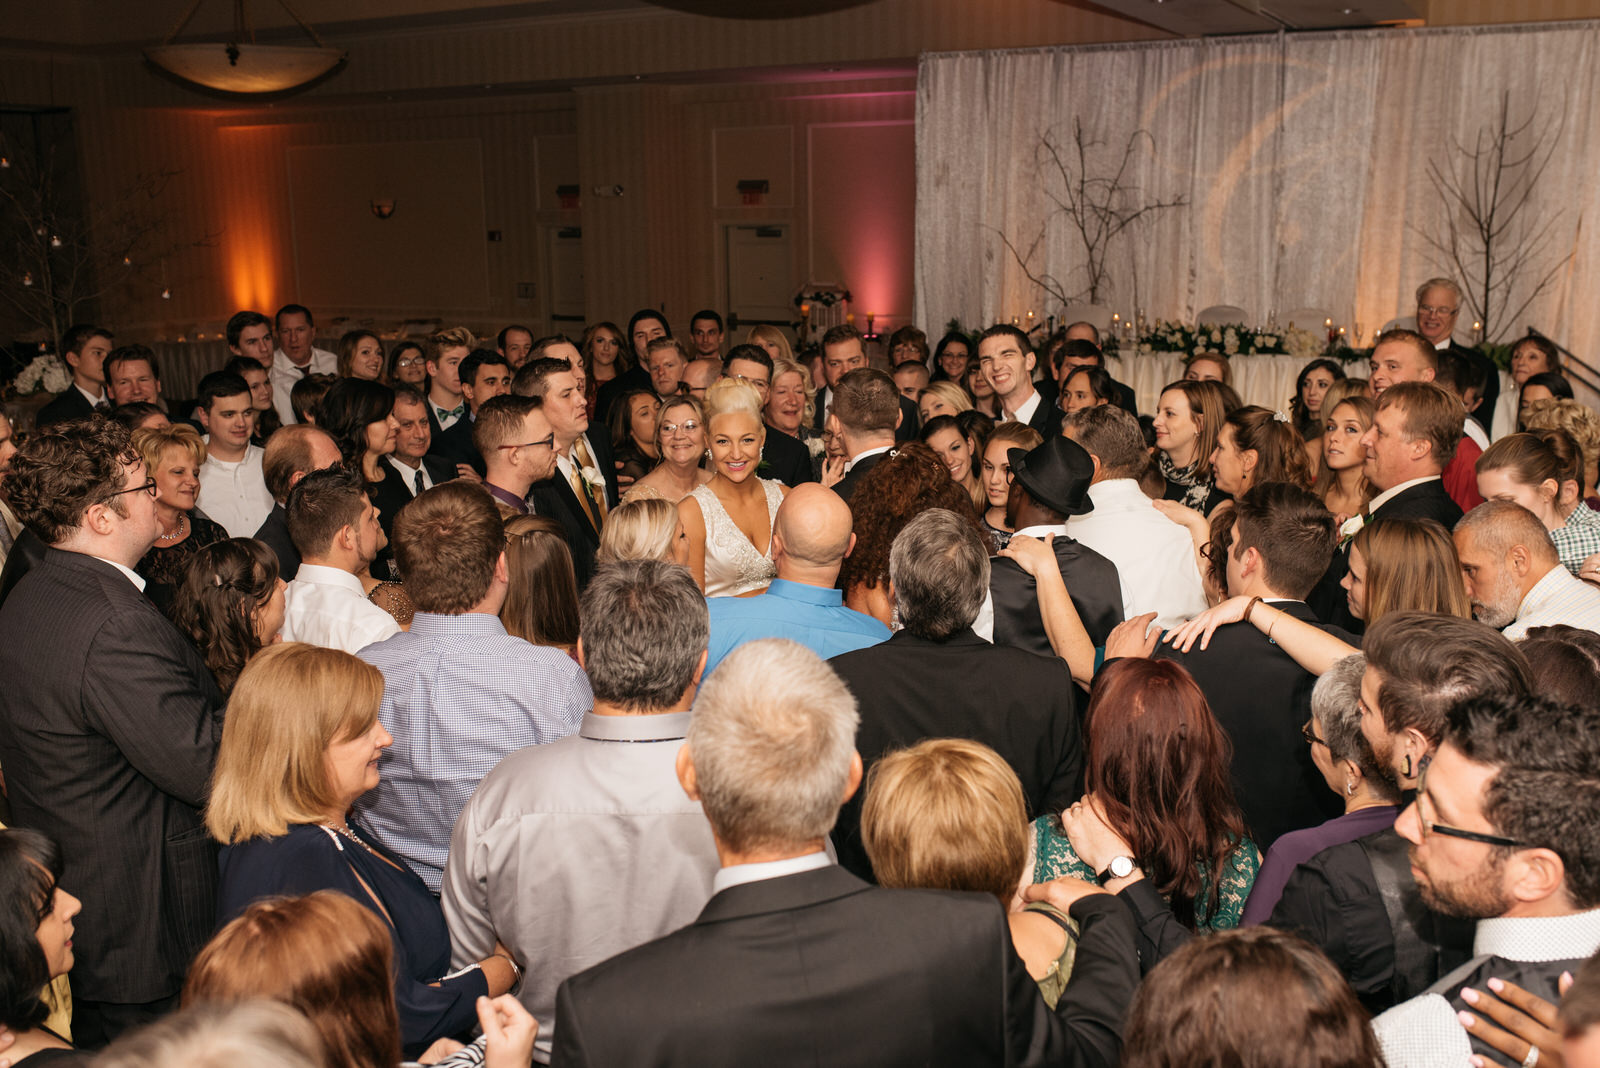 hilton_garden_inn_southpointe_pittsburgh_weddings_92.jpg